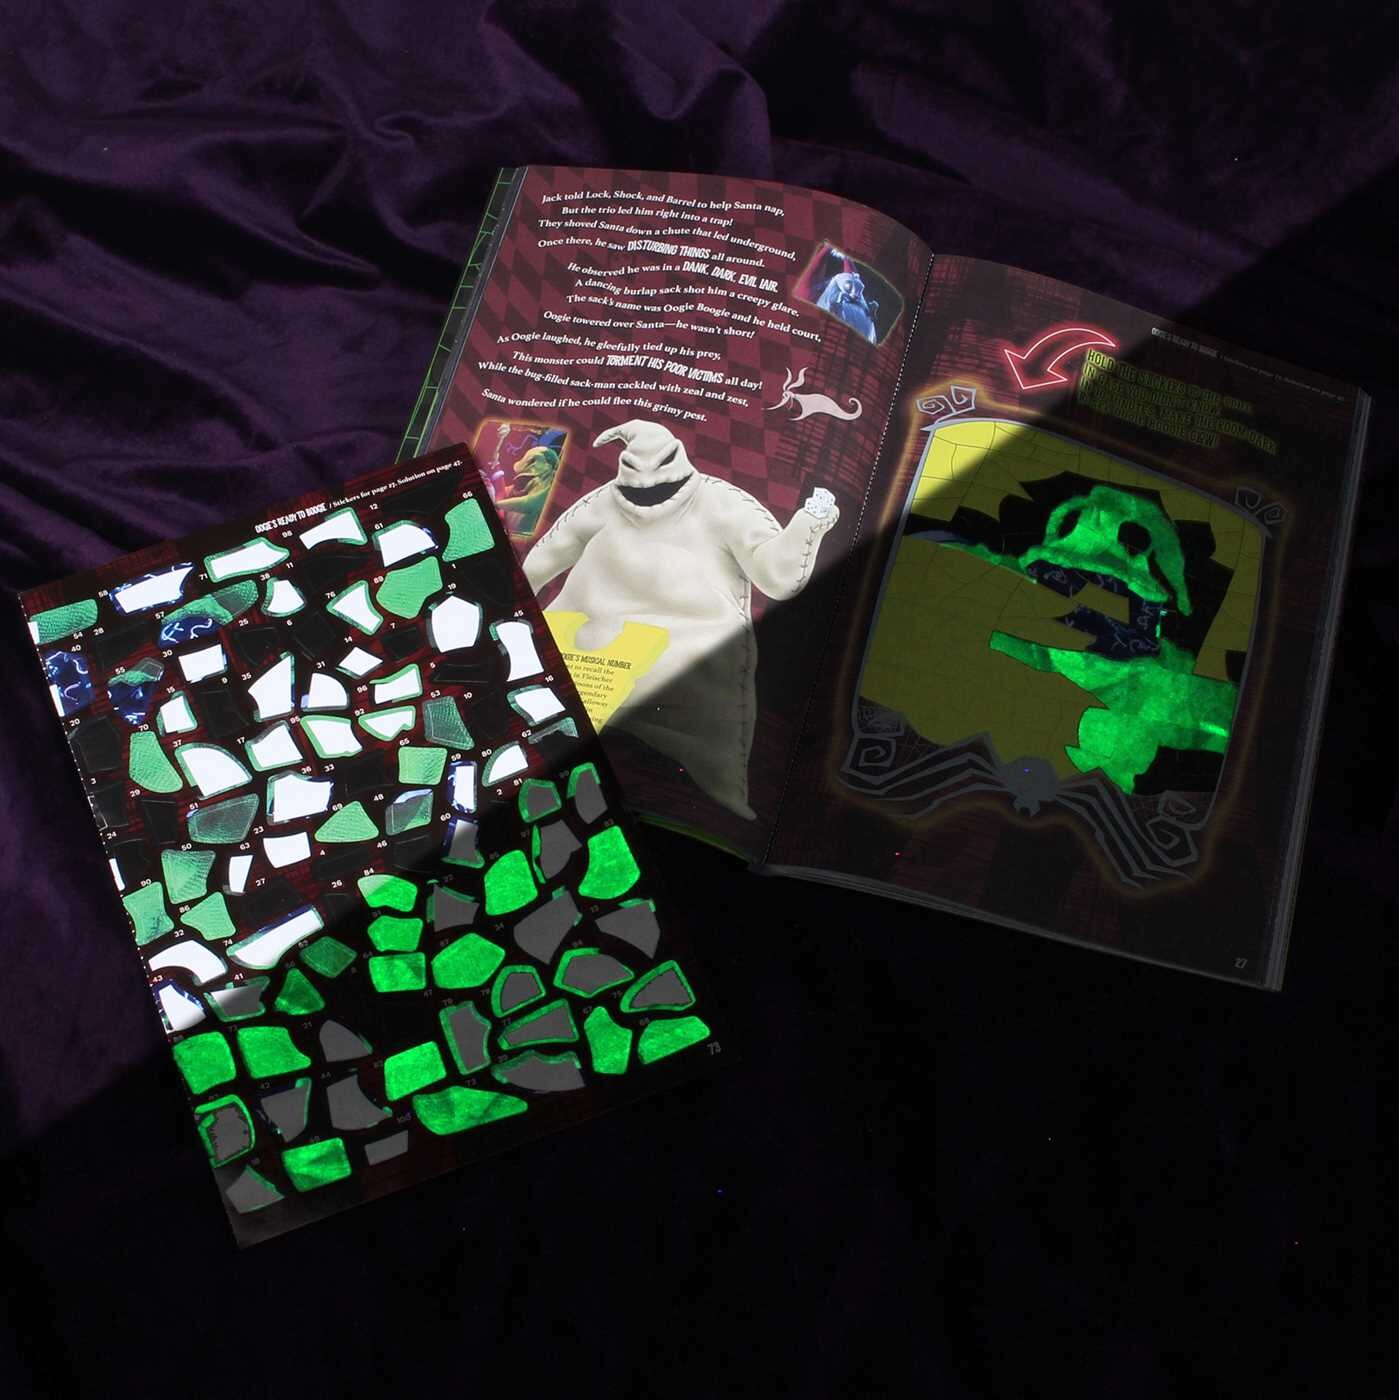 The Nightmare Before Christmas Sticker Art Puzzles interior